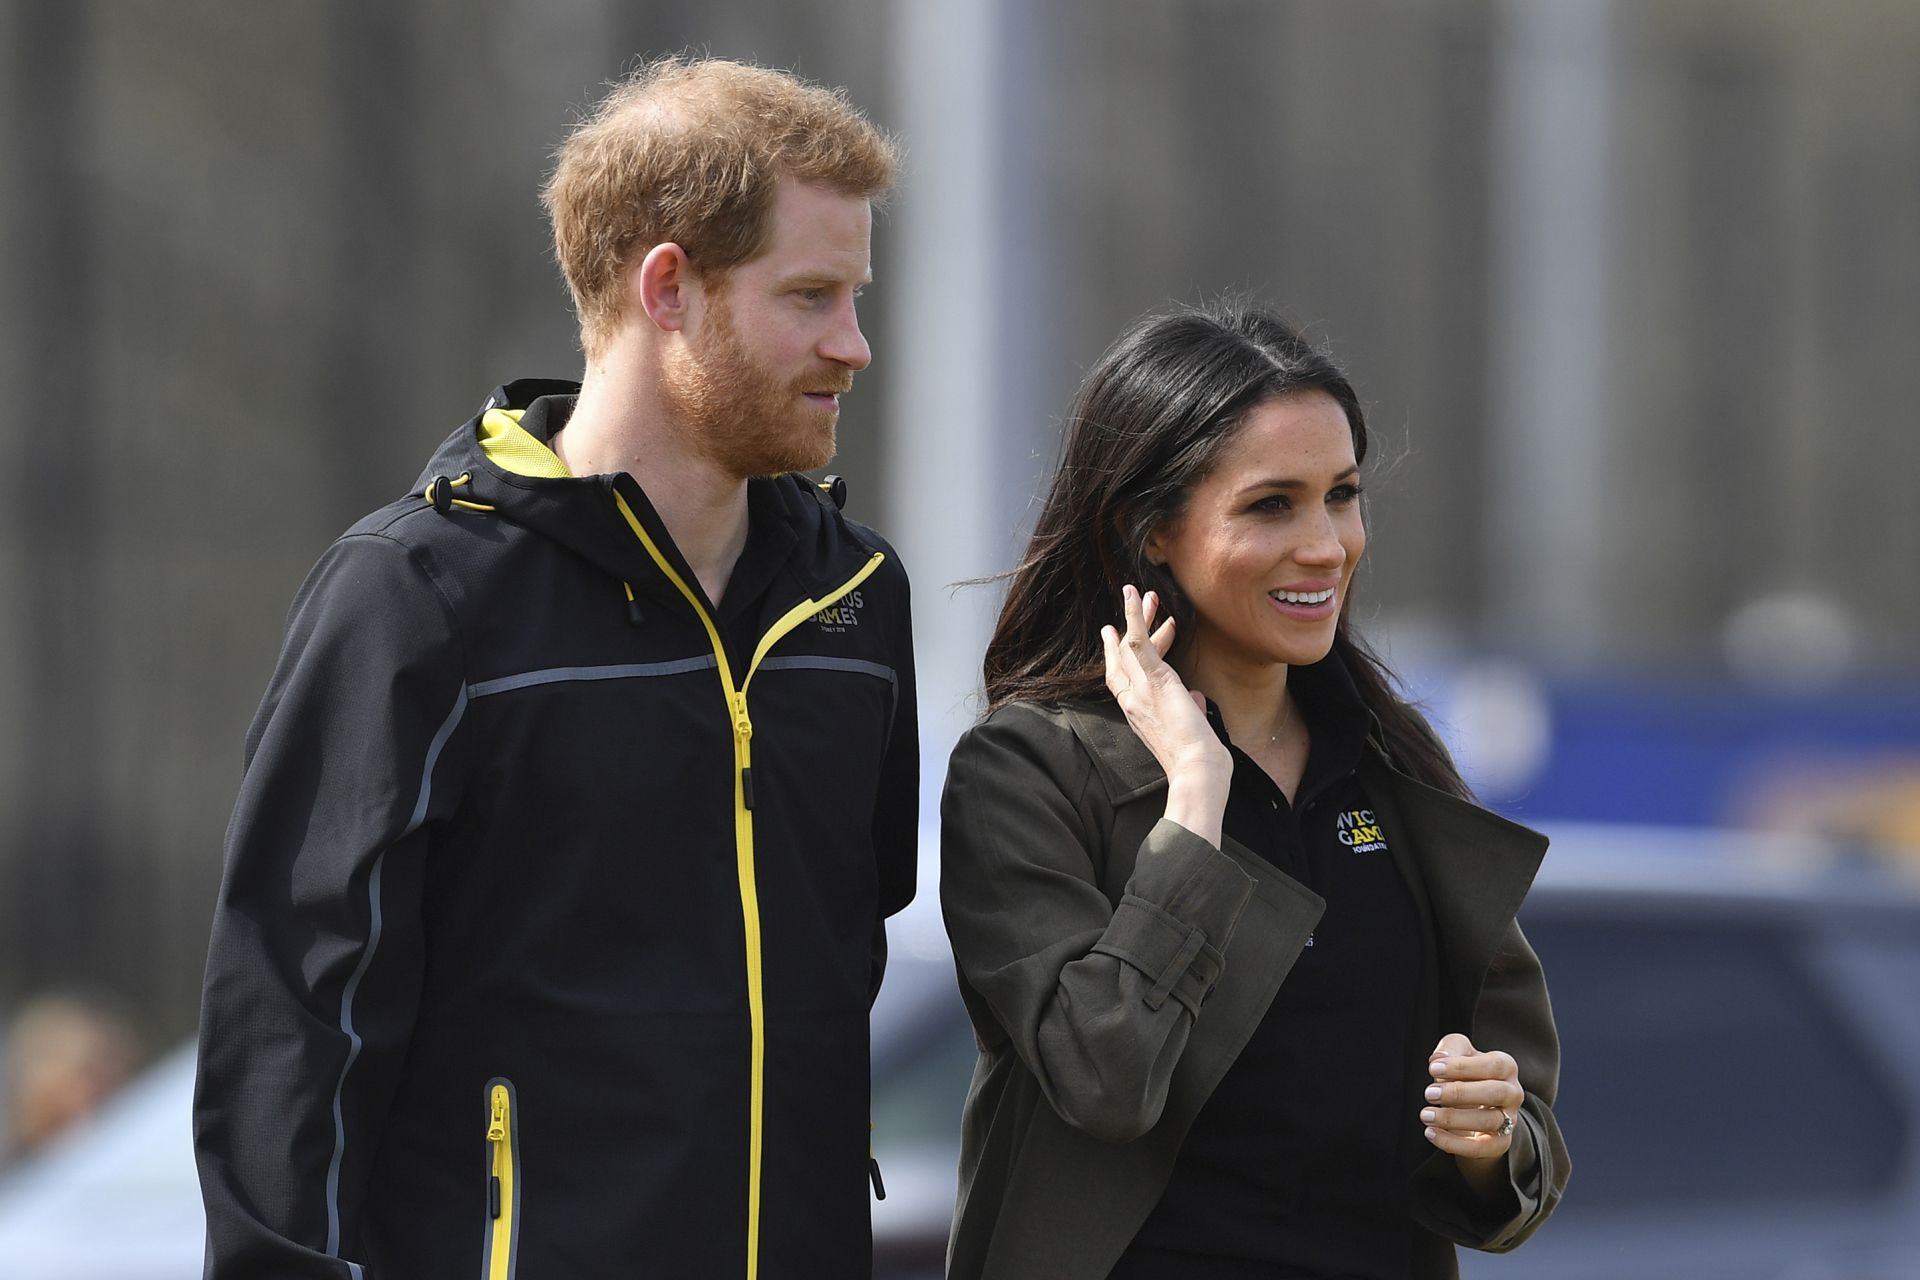 Britain's Prince Harry (L) and his fiancee US actress Meghan Markle (R) arrive to meet participants at the UK team trials for the Invictus Games Sydney 2018 at the University of Bath Sports Training Village in Bath, southwest England on April 6, 2018.The Invictus Games is an international sport event for wounded, injured and sick (WIS) servicemen and women, both serving and veteran. The Games aims to use the power of sport to inspire recovery, support rehabilitation and generate a wider understanding of al